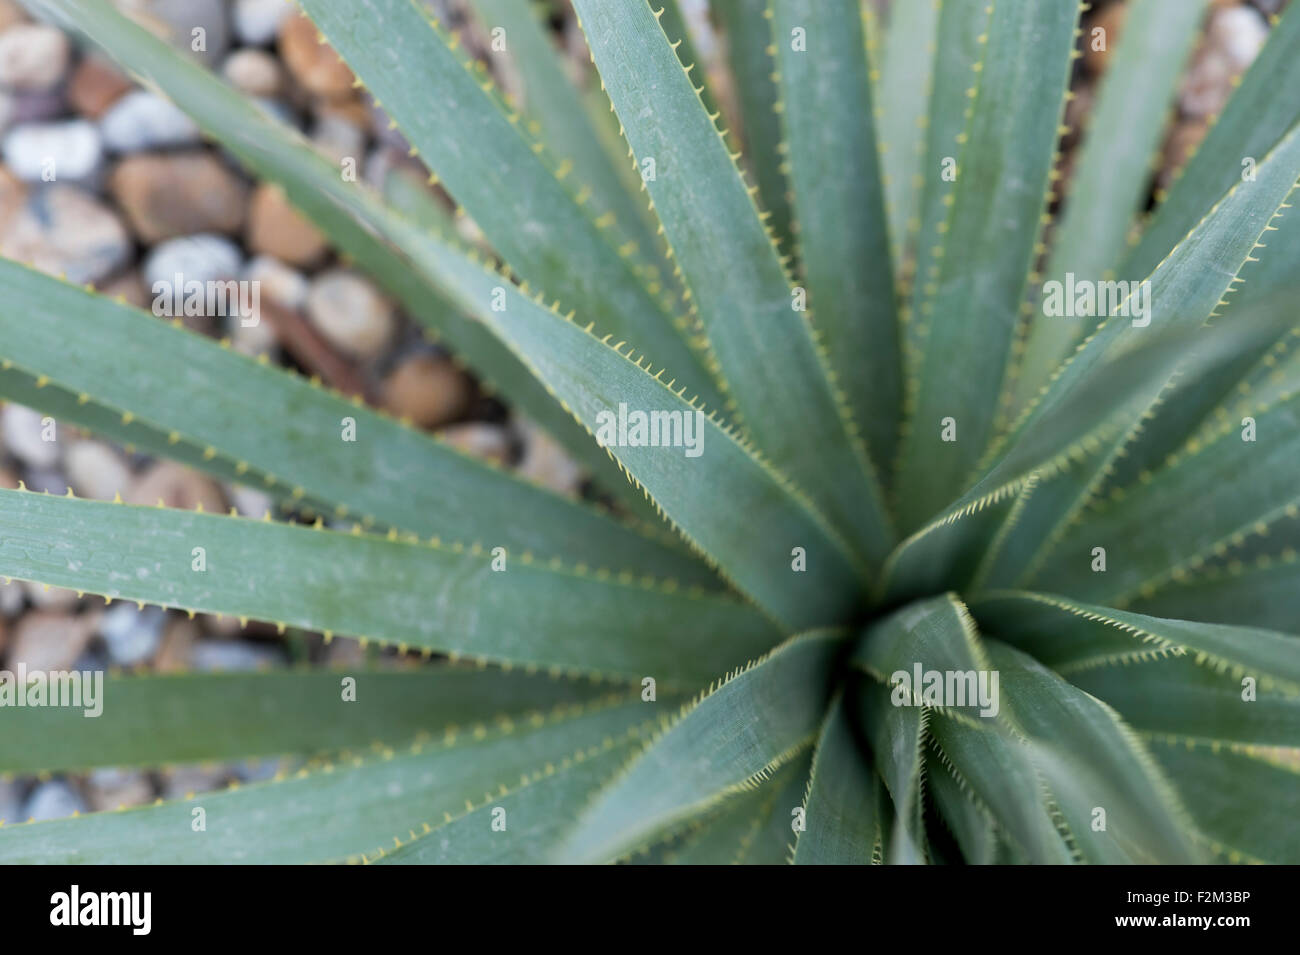 Dasylirion wheeleri. Spoon flower leaves with spines - Stock Image